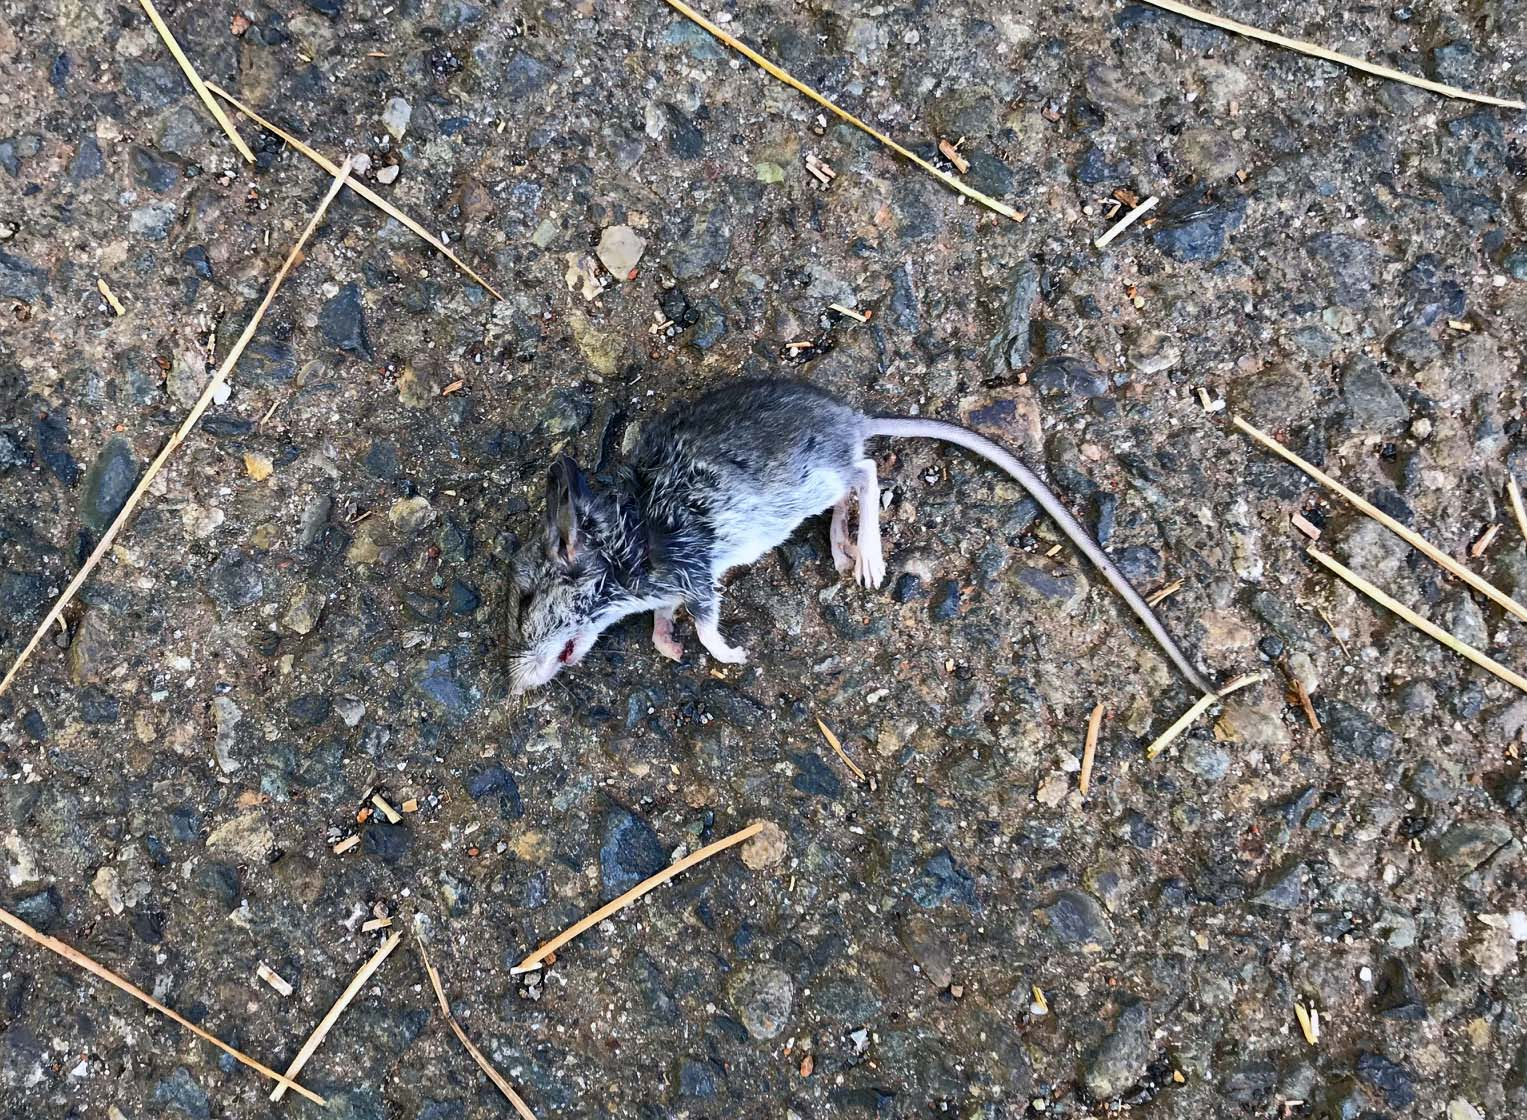 """""""Stupid mouse, never saw it coming."""" """"What's up with whatever killed it? Didn't even eat it?"""" """"It's not about food!It's about Power! """"or """"Poor mousey!"""" Maybe some wisdom about nature and the universe? Does it even matter?"""